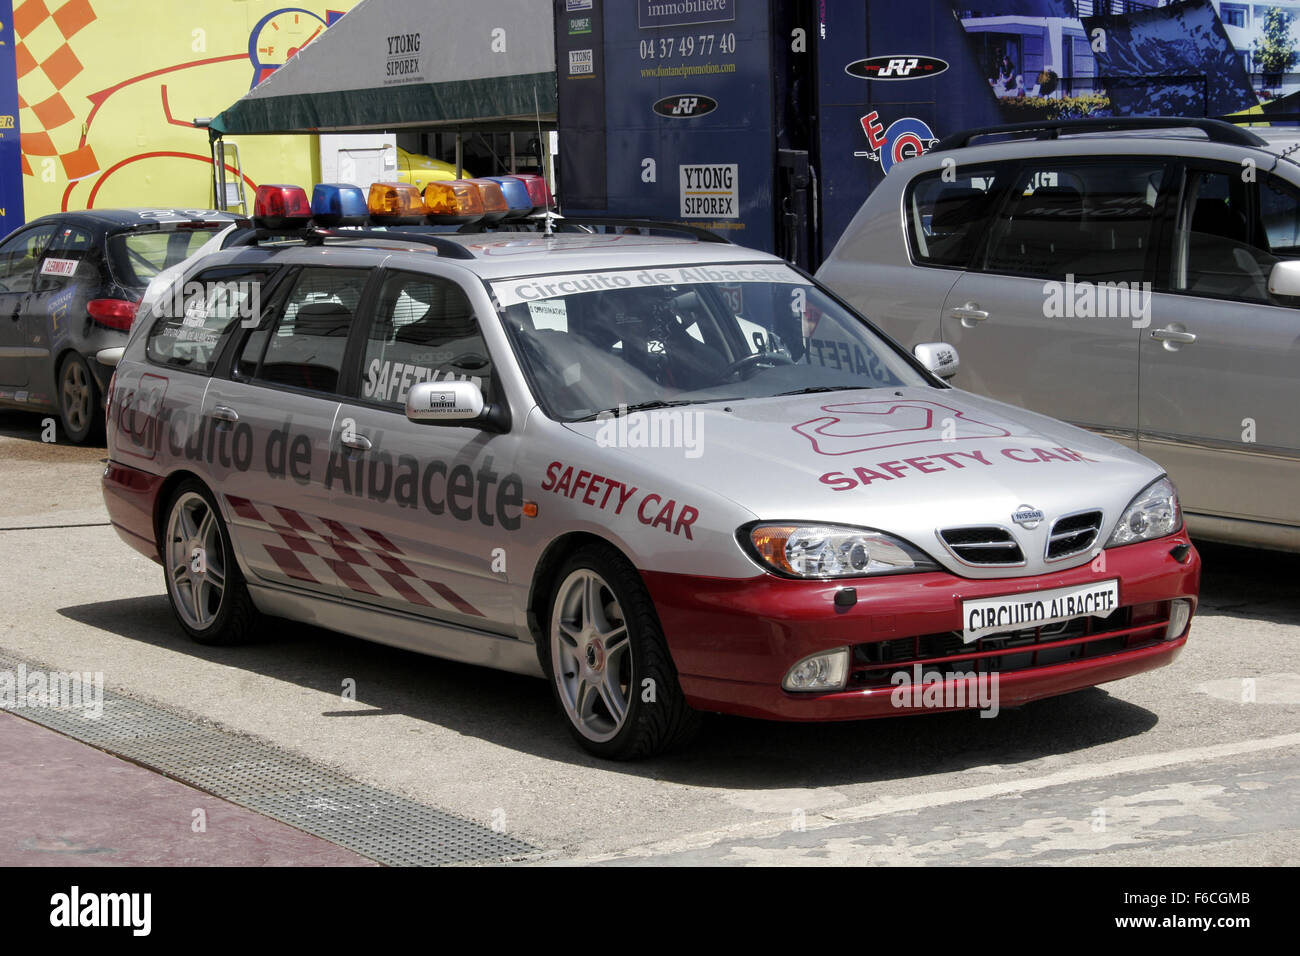 Albacete Circuit : Classical seat 600 car meeting in albacete spain. safety car stock